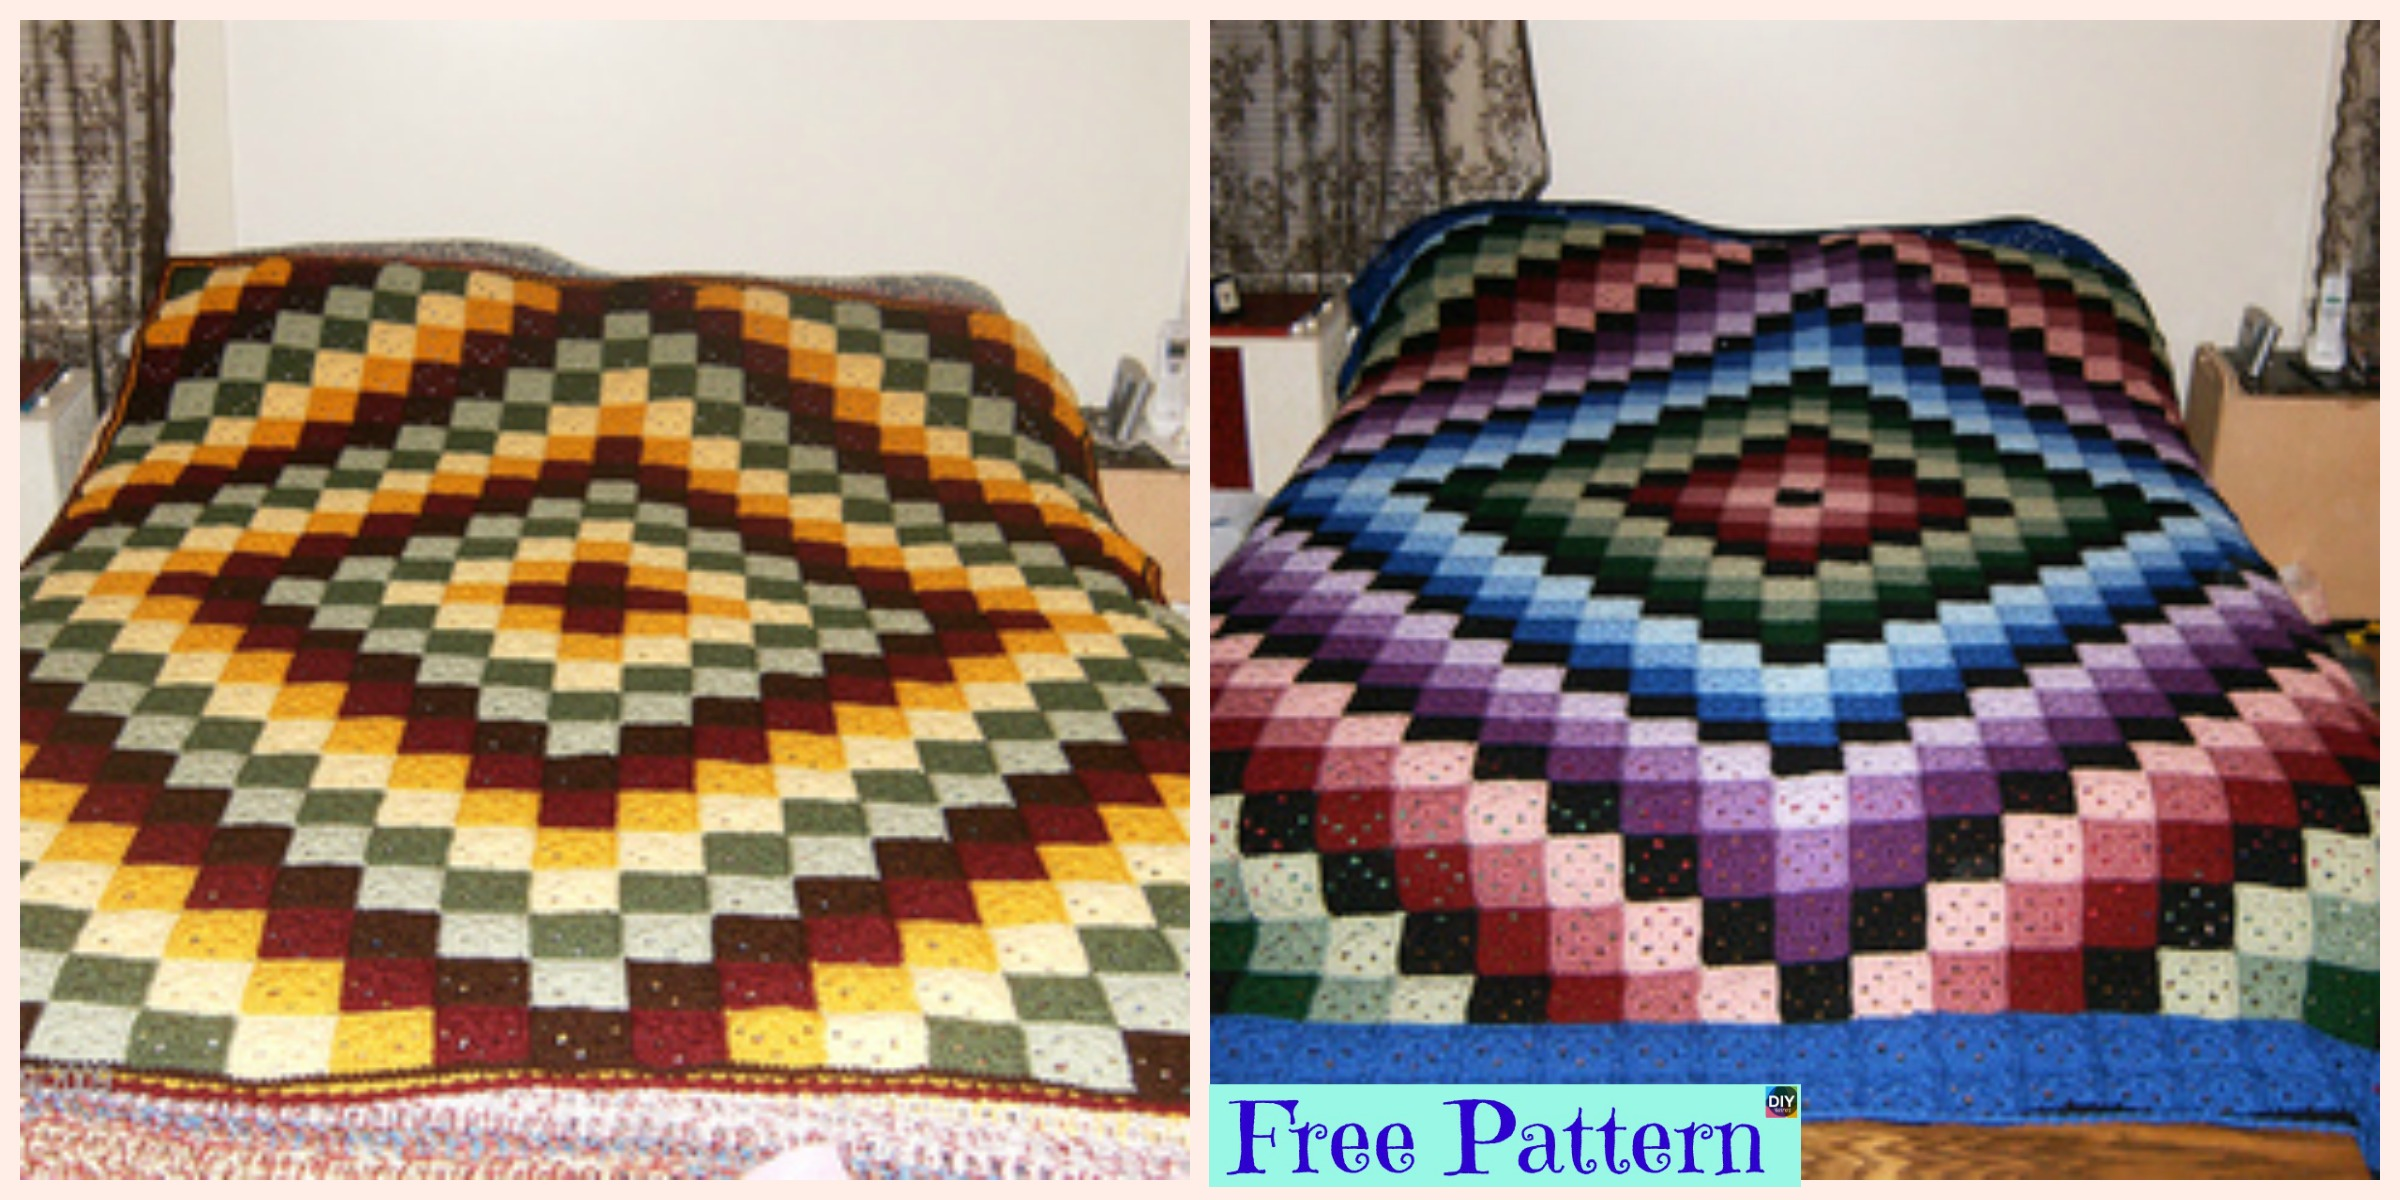 Beautiful Crochet Around World Quilt – Free Pattern